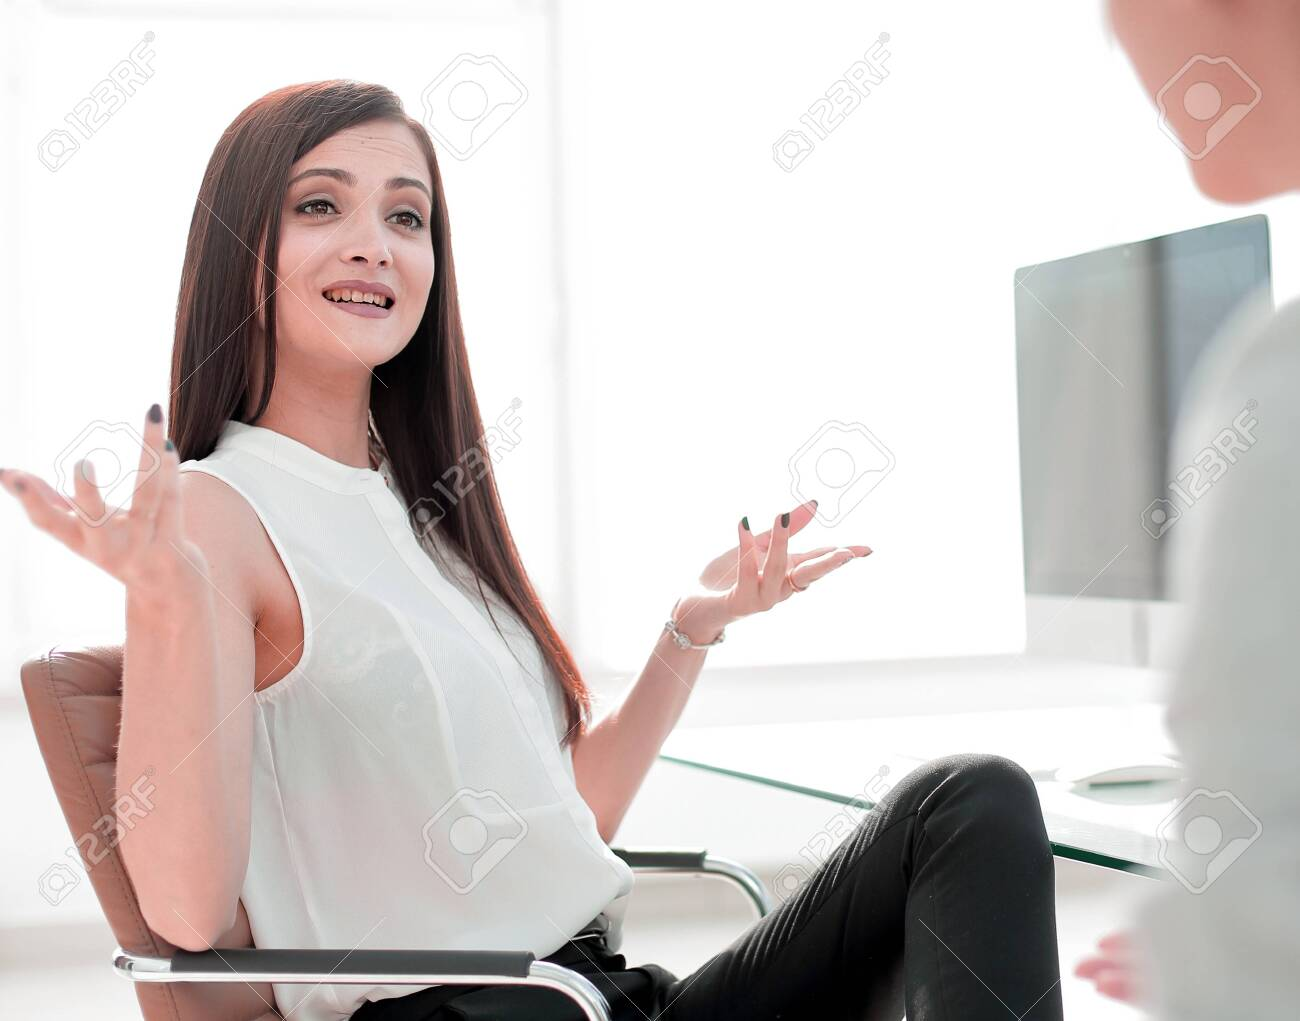 two business women talking in the workplace - 120458702